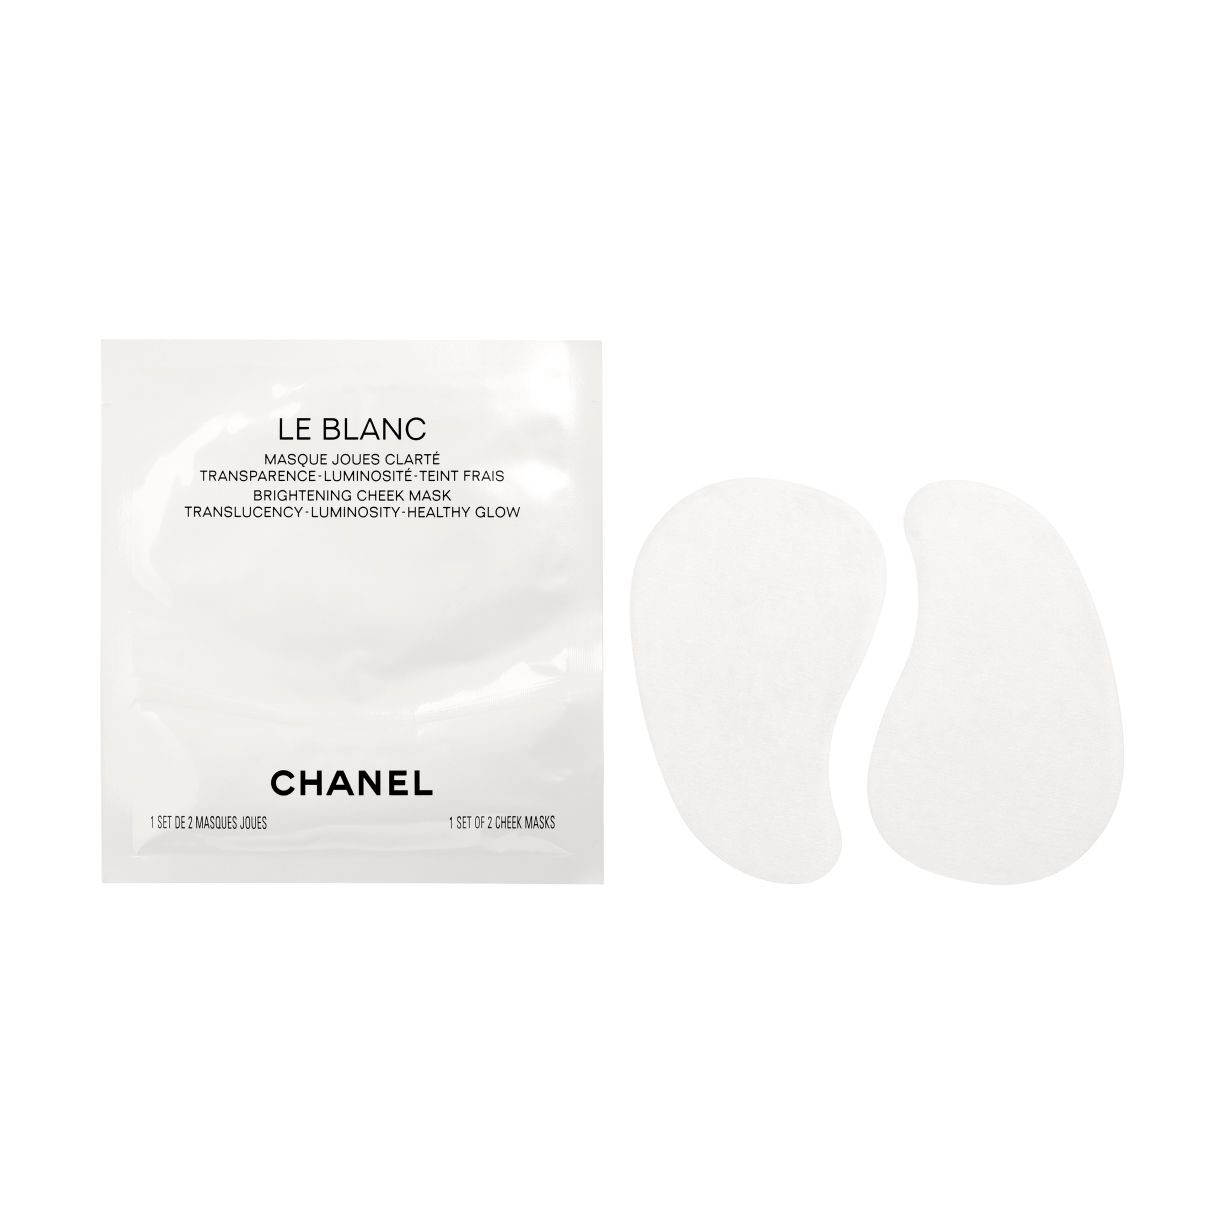 LE BLANC BRIGHTENING CHEEK MASK TRANSLUCENCY - LUMINOSITY - HEALTHY GLOW